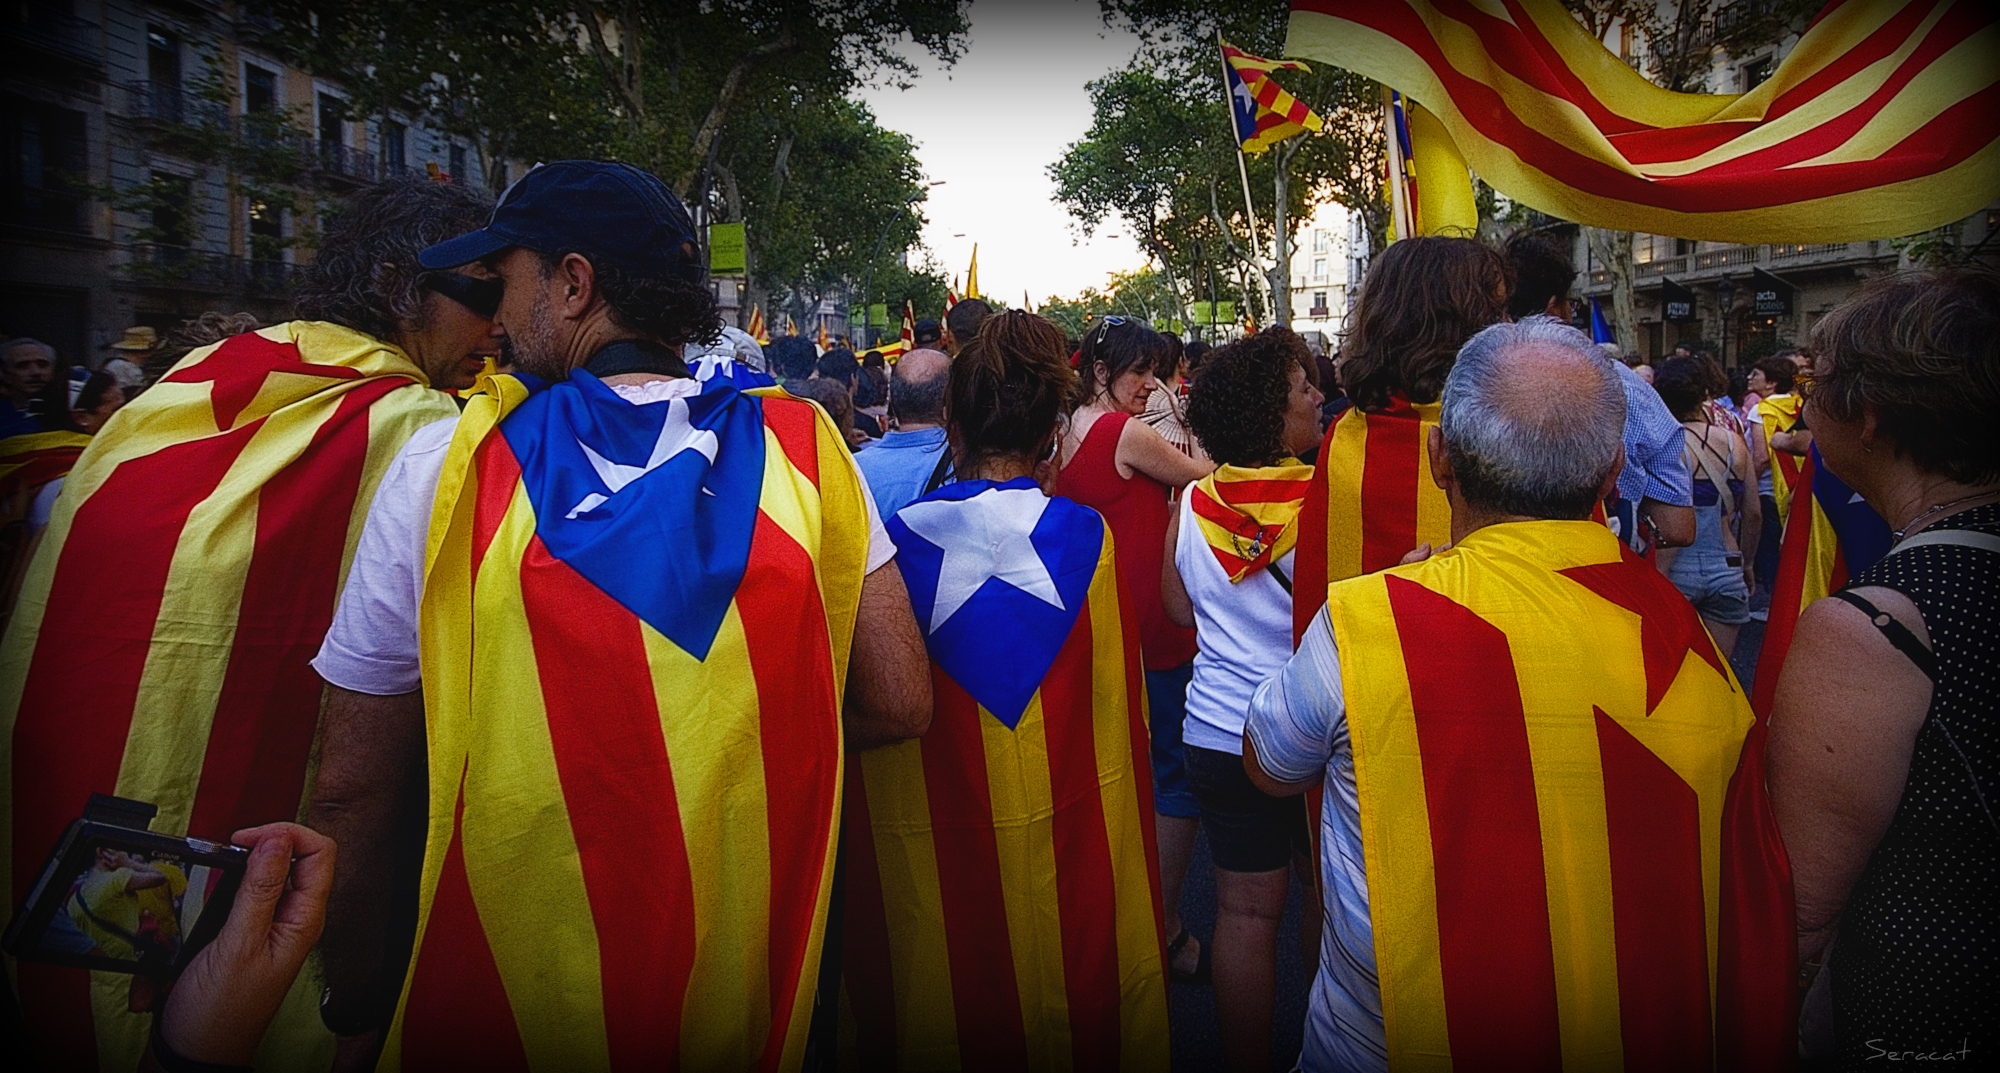 Should Catalonia stay with Spain?